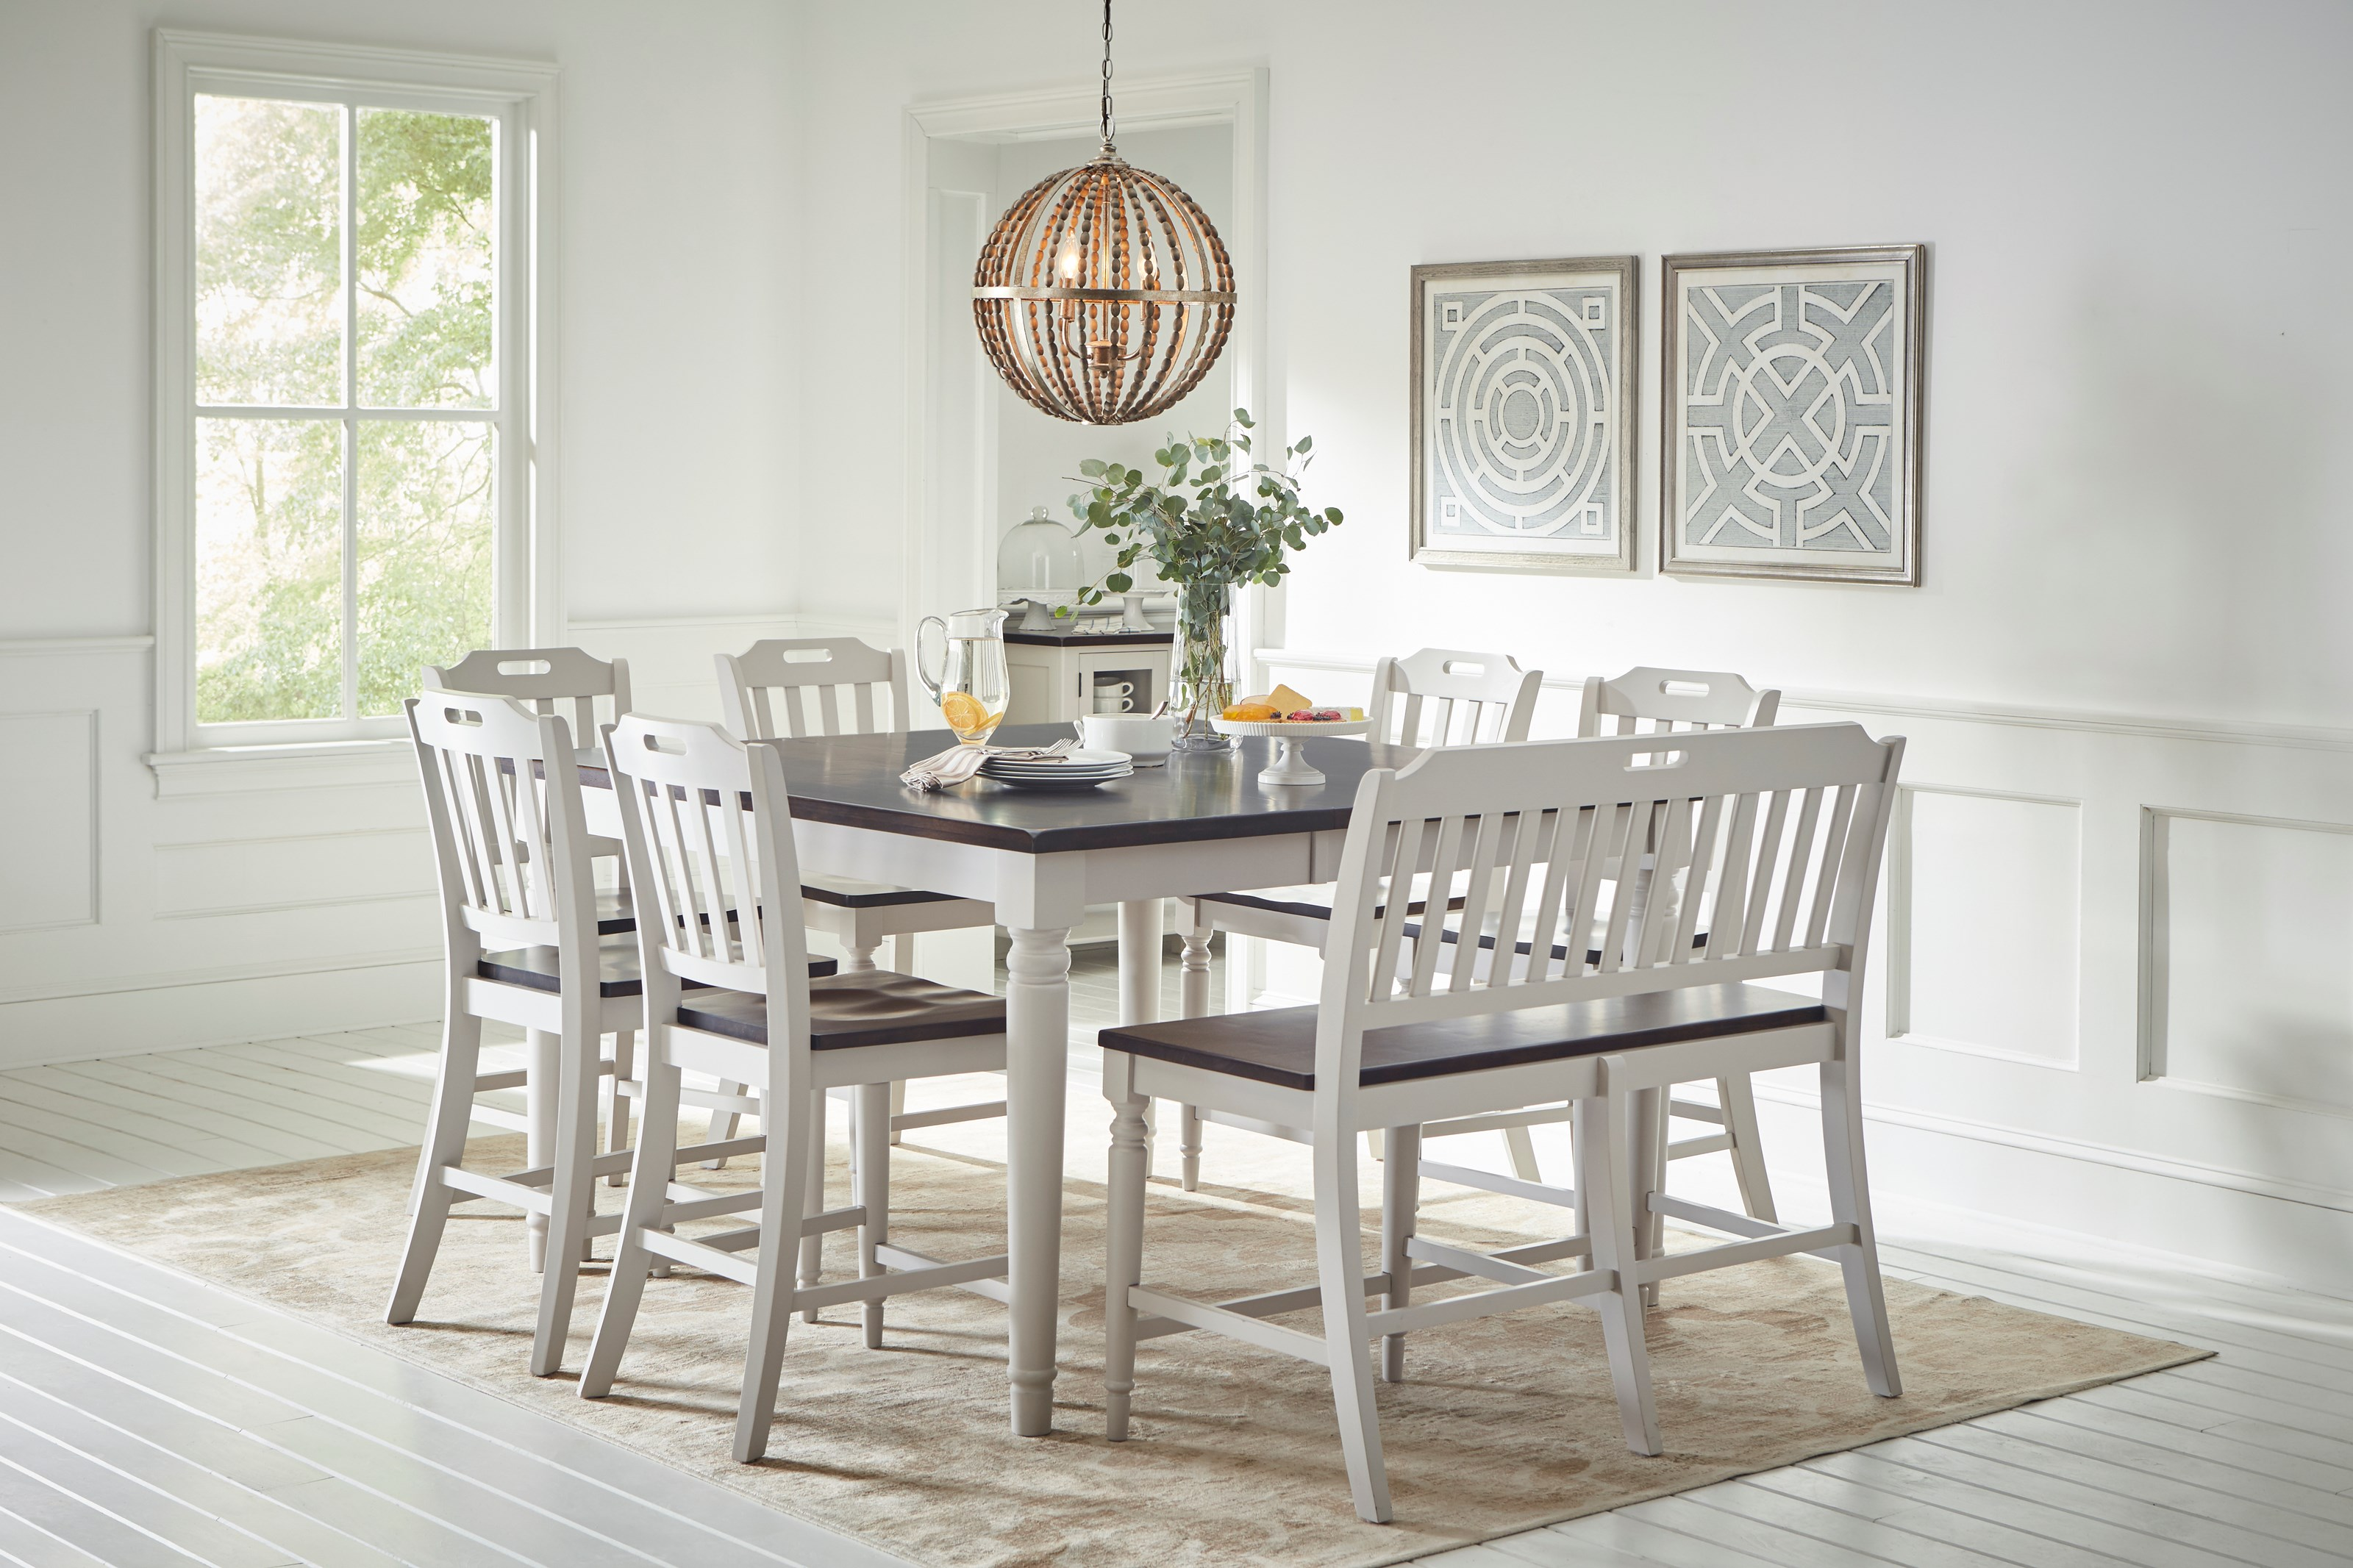 Orchard Park Counter Height Table w/ 6 Chairs & Bench by Jofran at Jofran